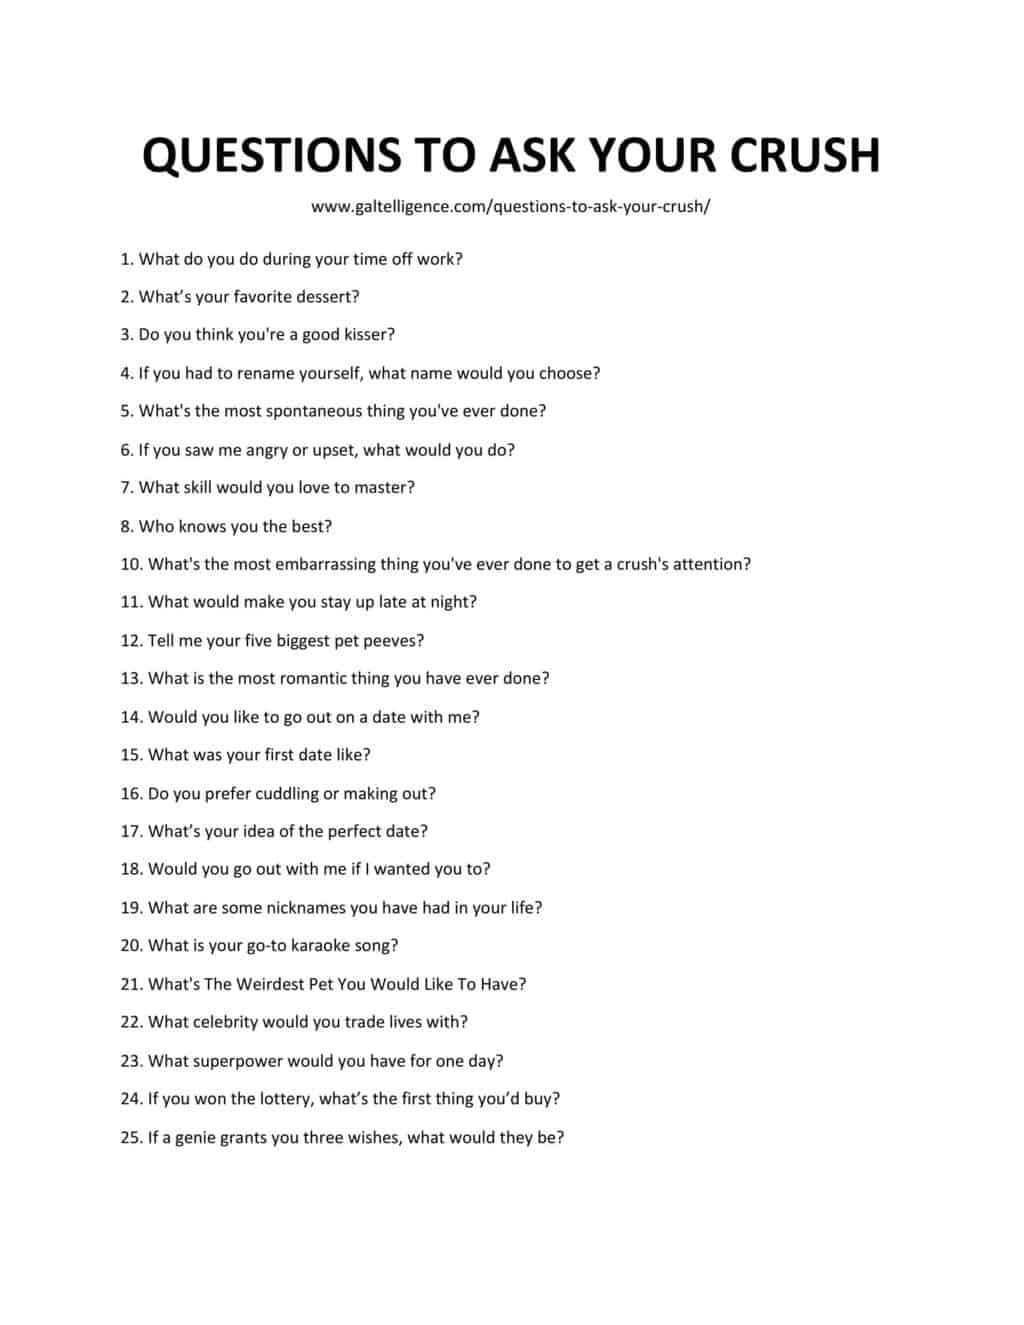 Downloadable and Printable List of Questions to Ask your Crush as JPG or PDF